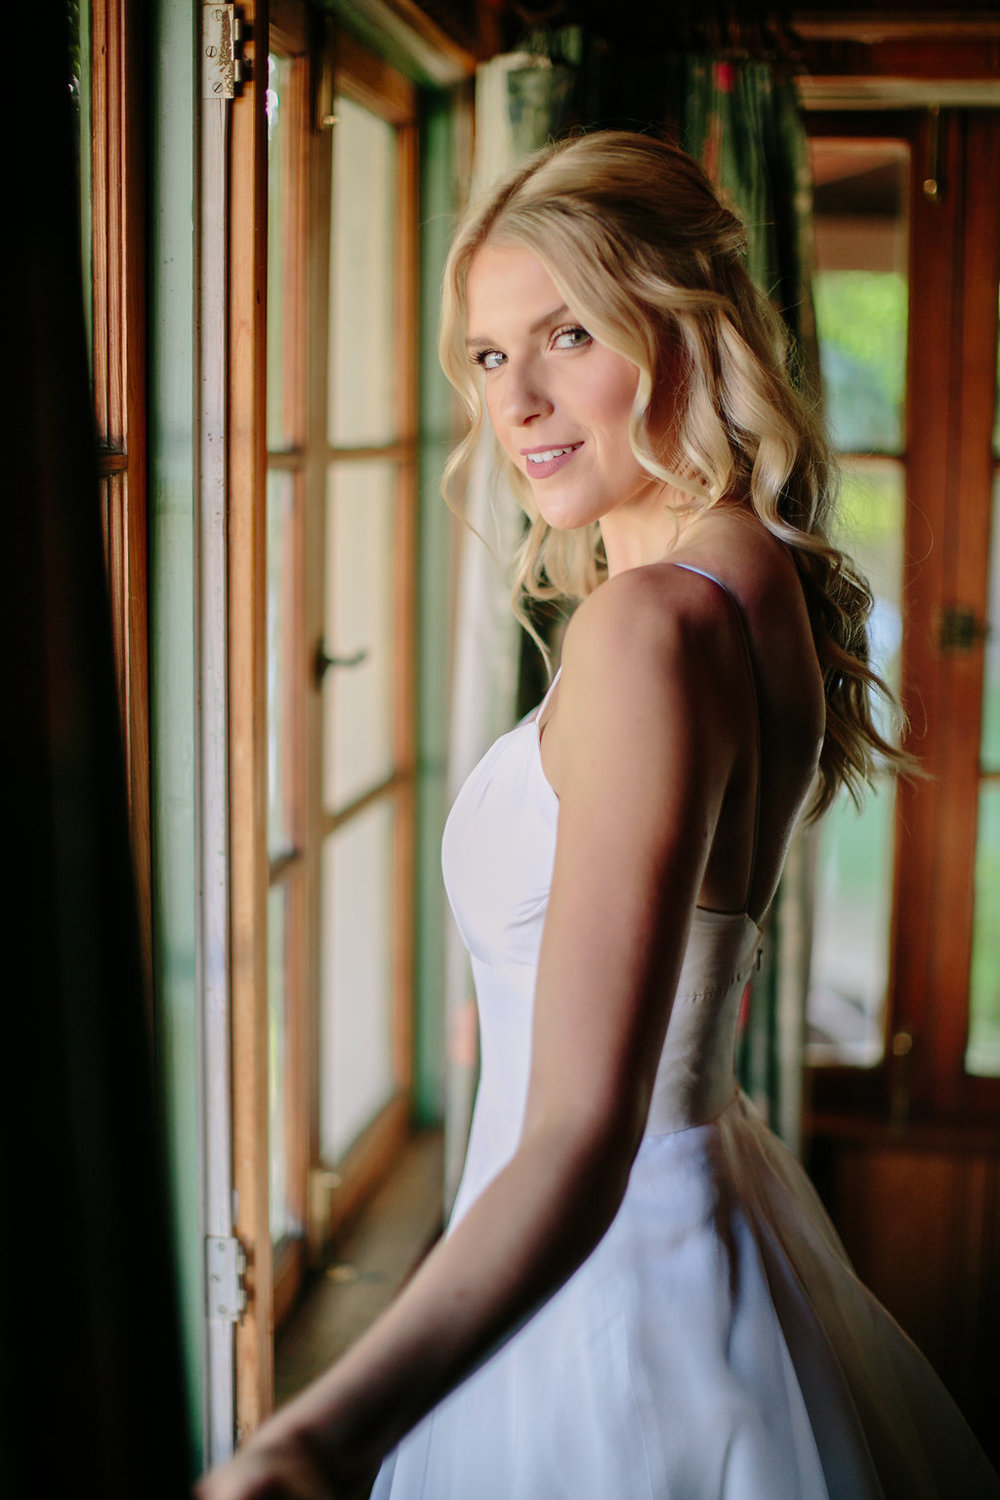 kailey-mann-wedding-dress.jpg